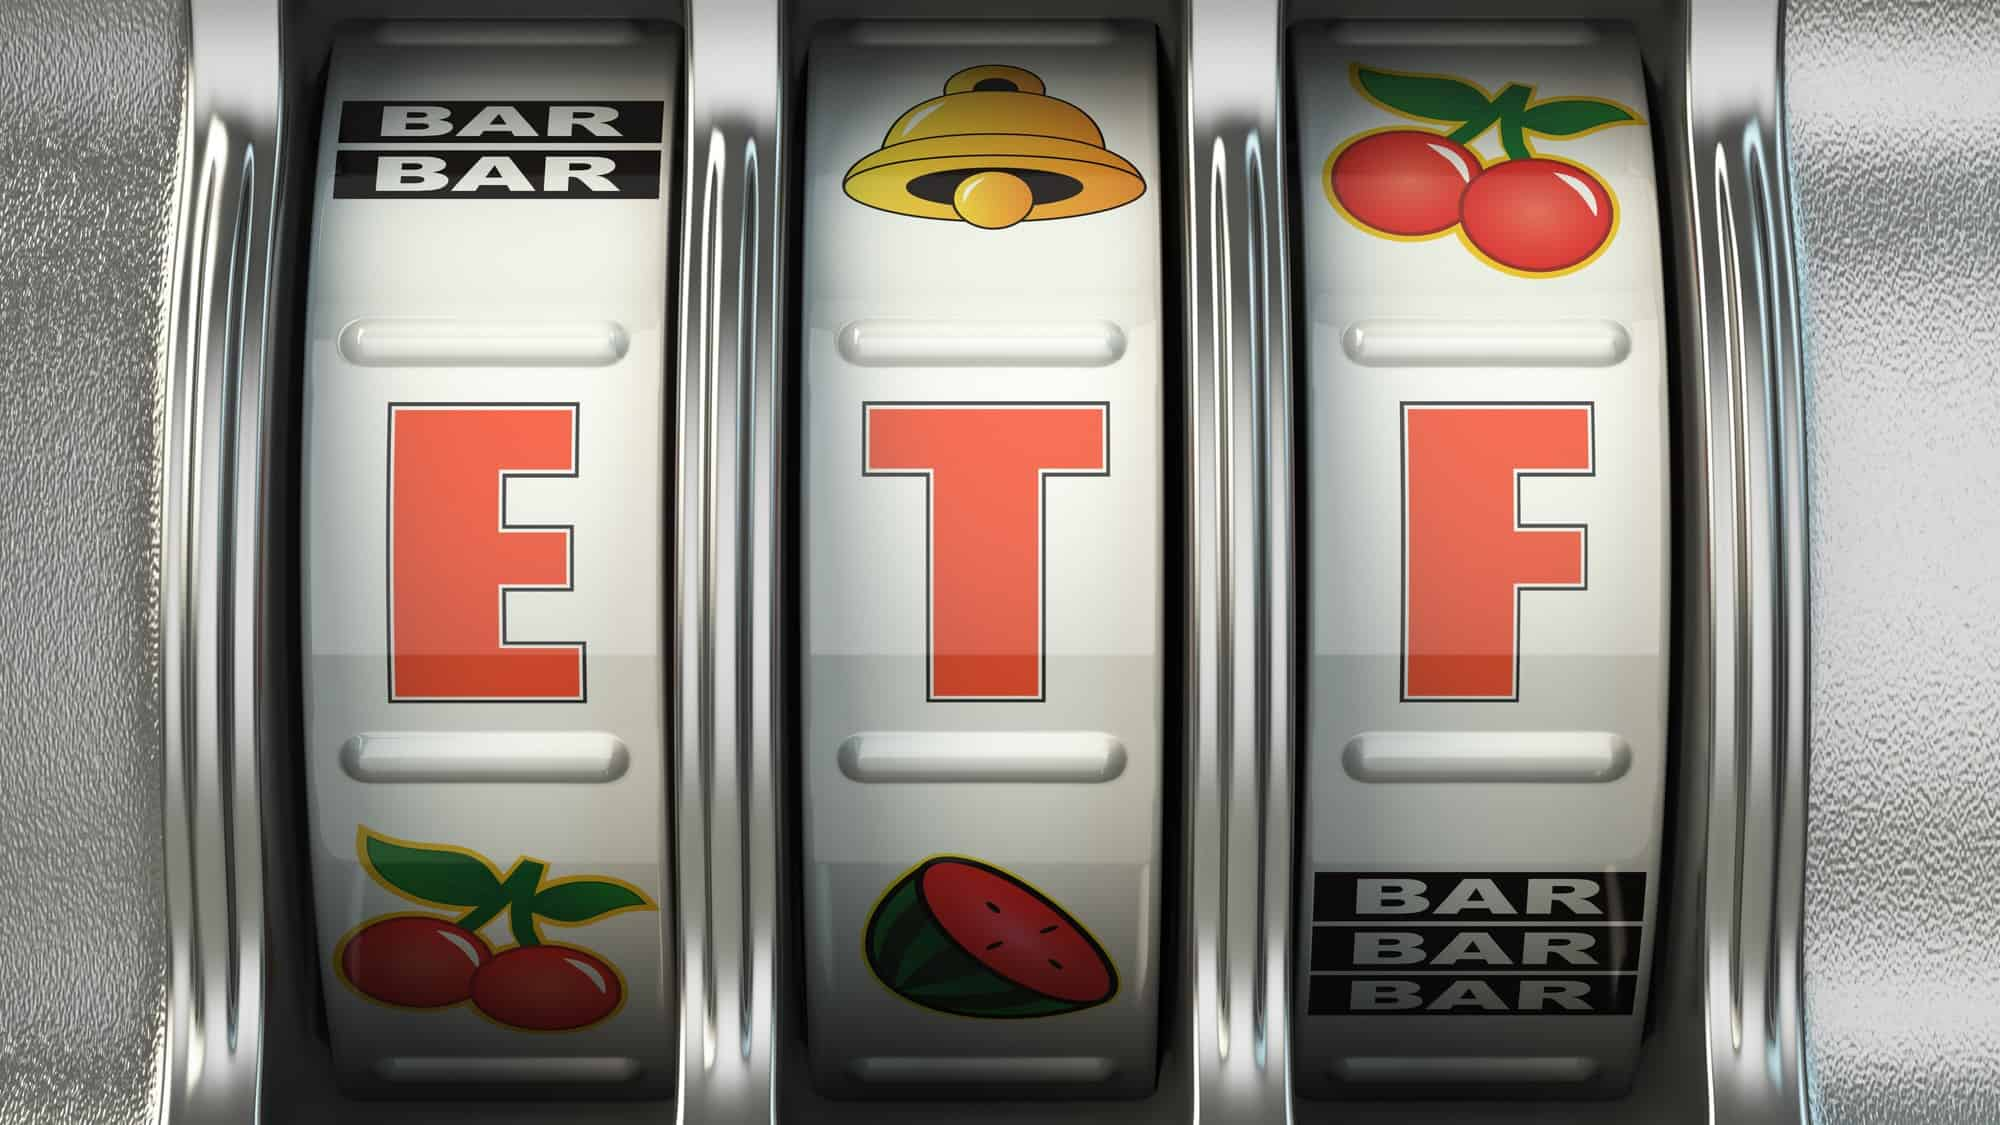 growth exchange traded fund represented by letters ETF on slot machine